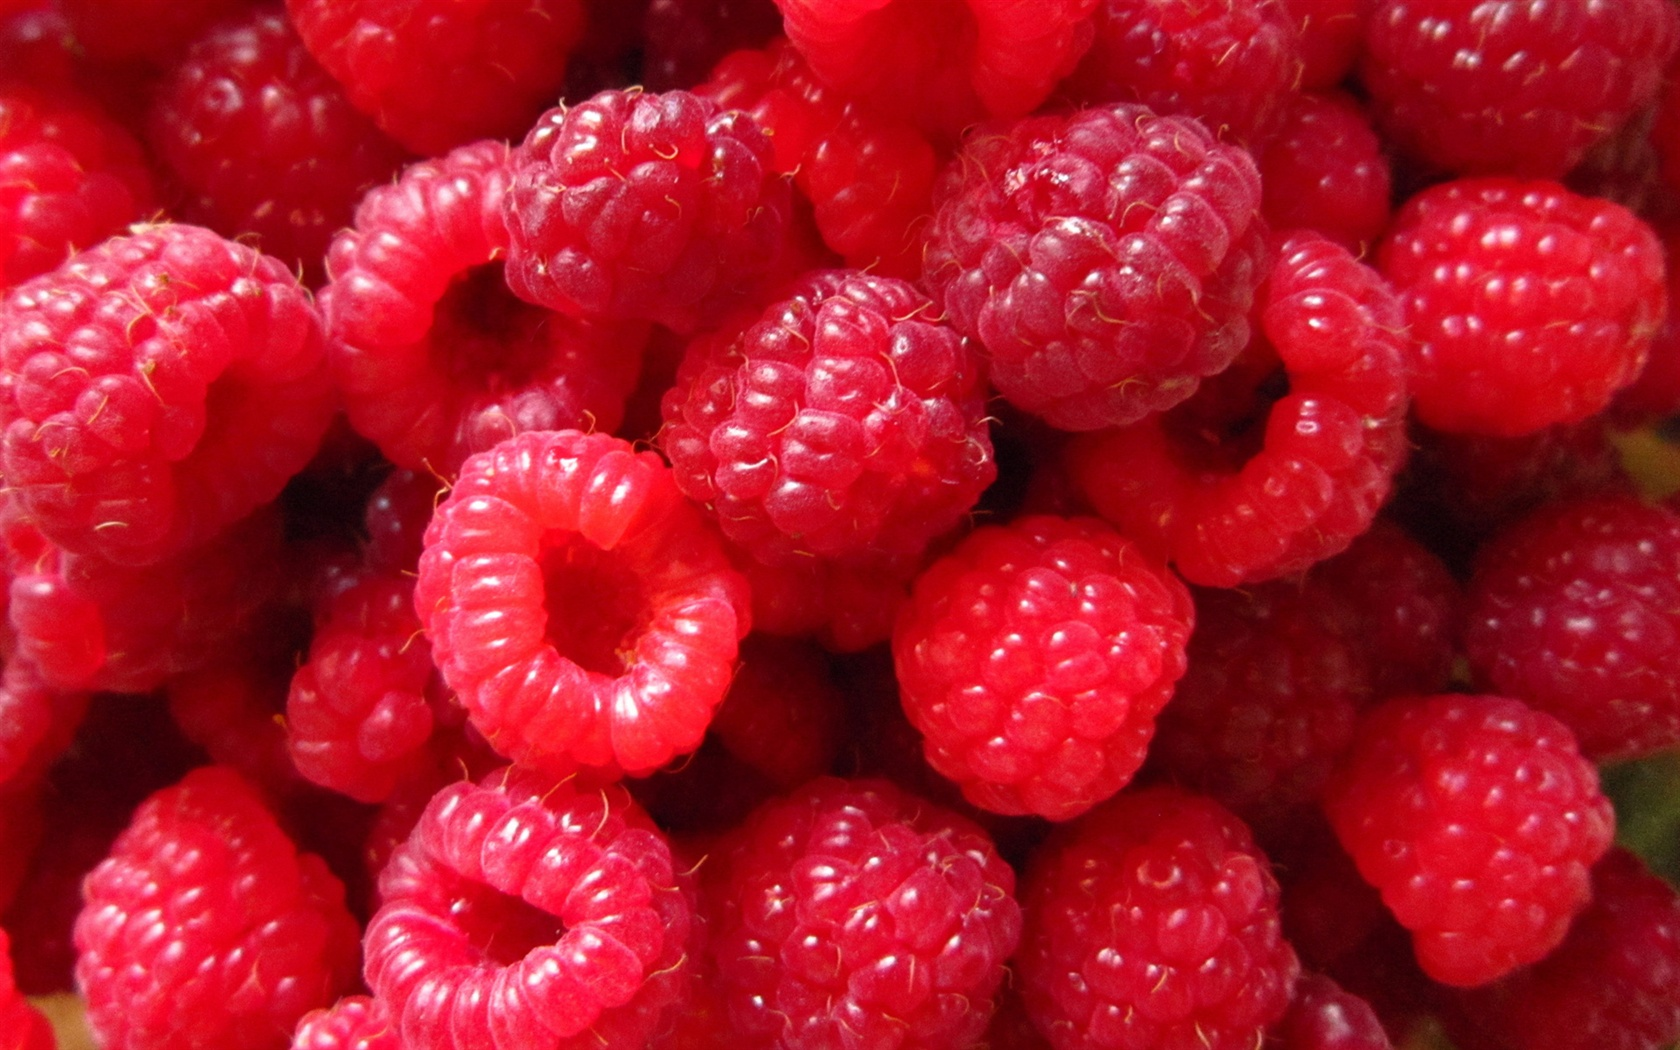 Red Raspberry berries, close-up photography wallpaper 1680x1050.